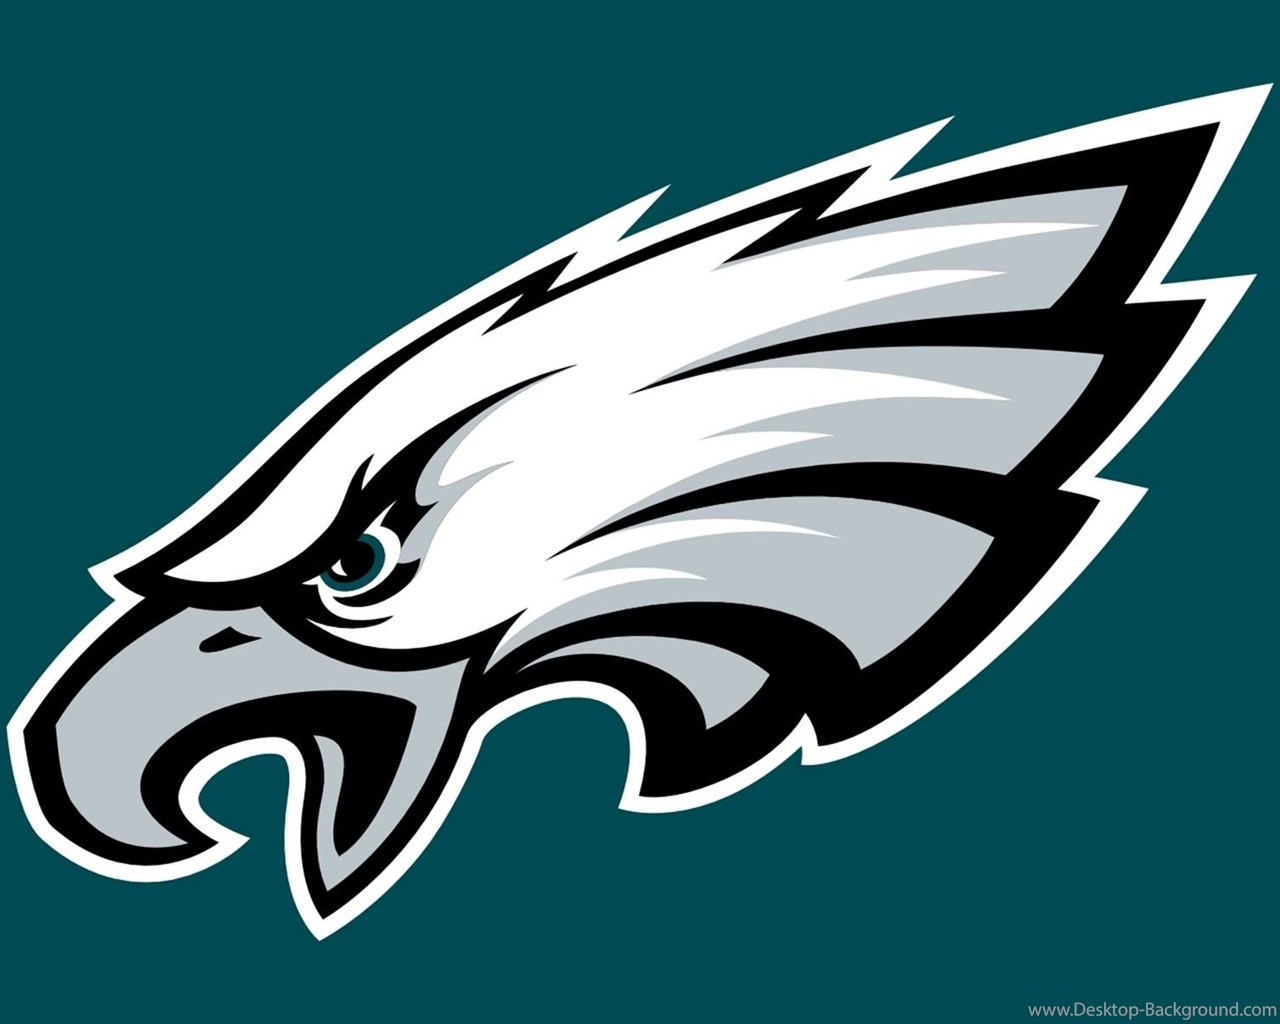 delphia-eagles-logo-philadelphia-eagles-logo-wallpapers.jpg